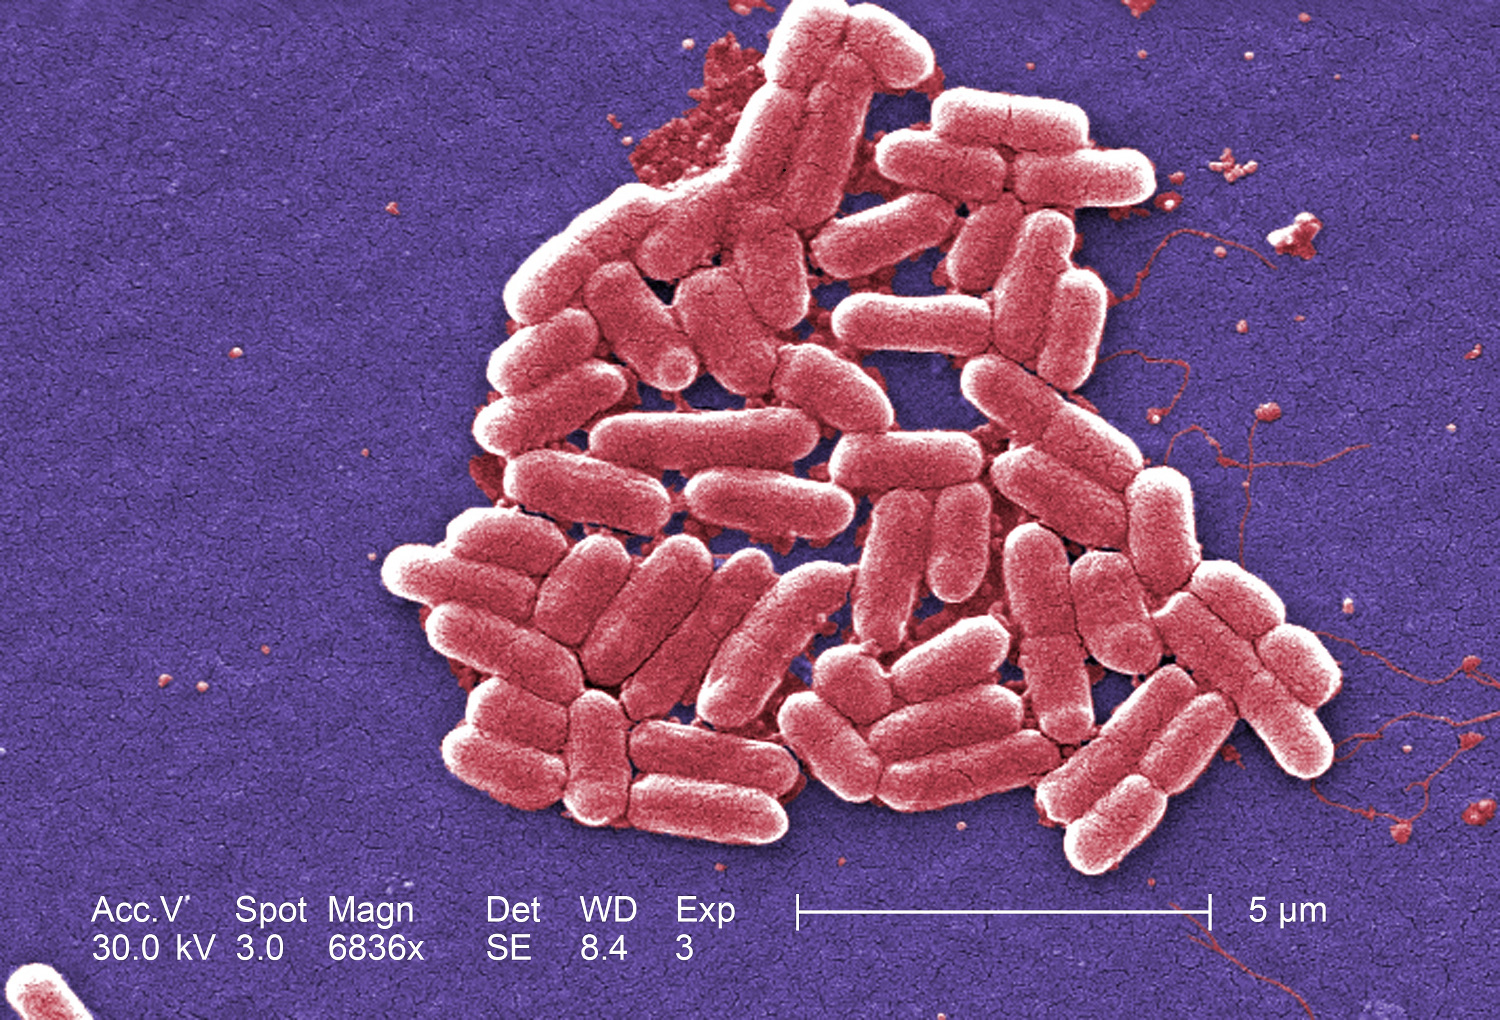 Under a magnification of 6836x, this colorized scanning electron micrograph (SEM) depicted a number of Gram-negative Escherichia coli bacteria of the strain O157:H7, which is one of hundreds of strains of this bacterium. Image by Janice Haney Carr, Centers for Disease Control and Prevention